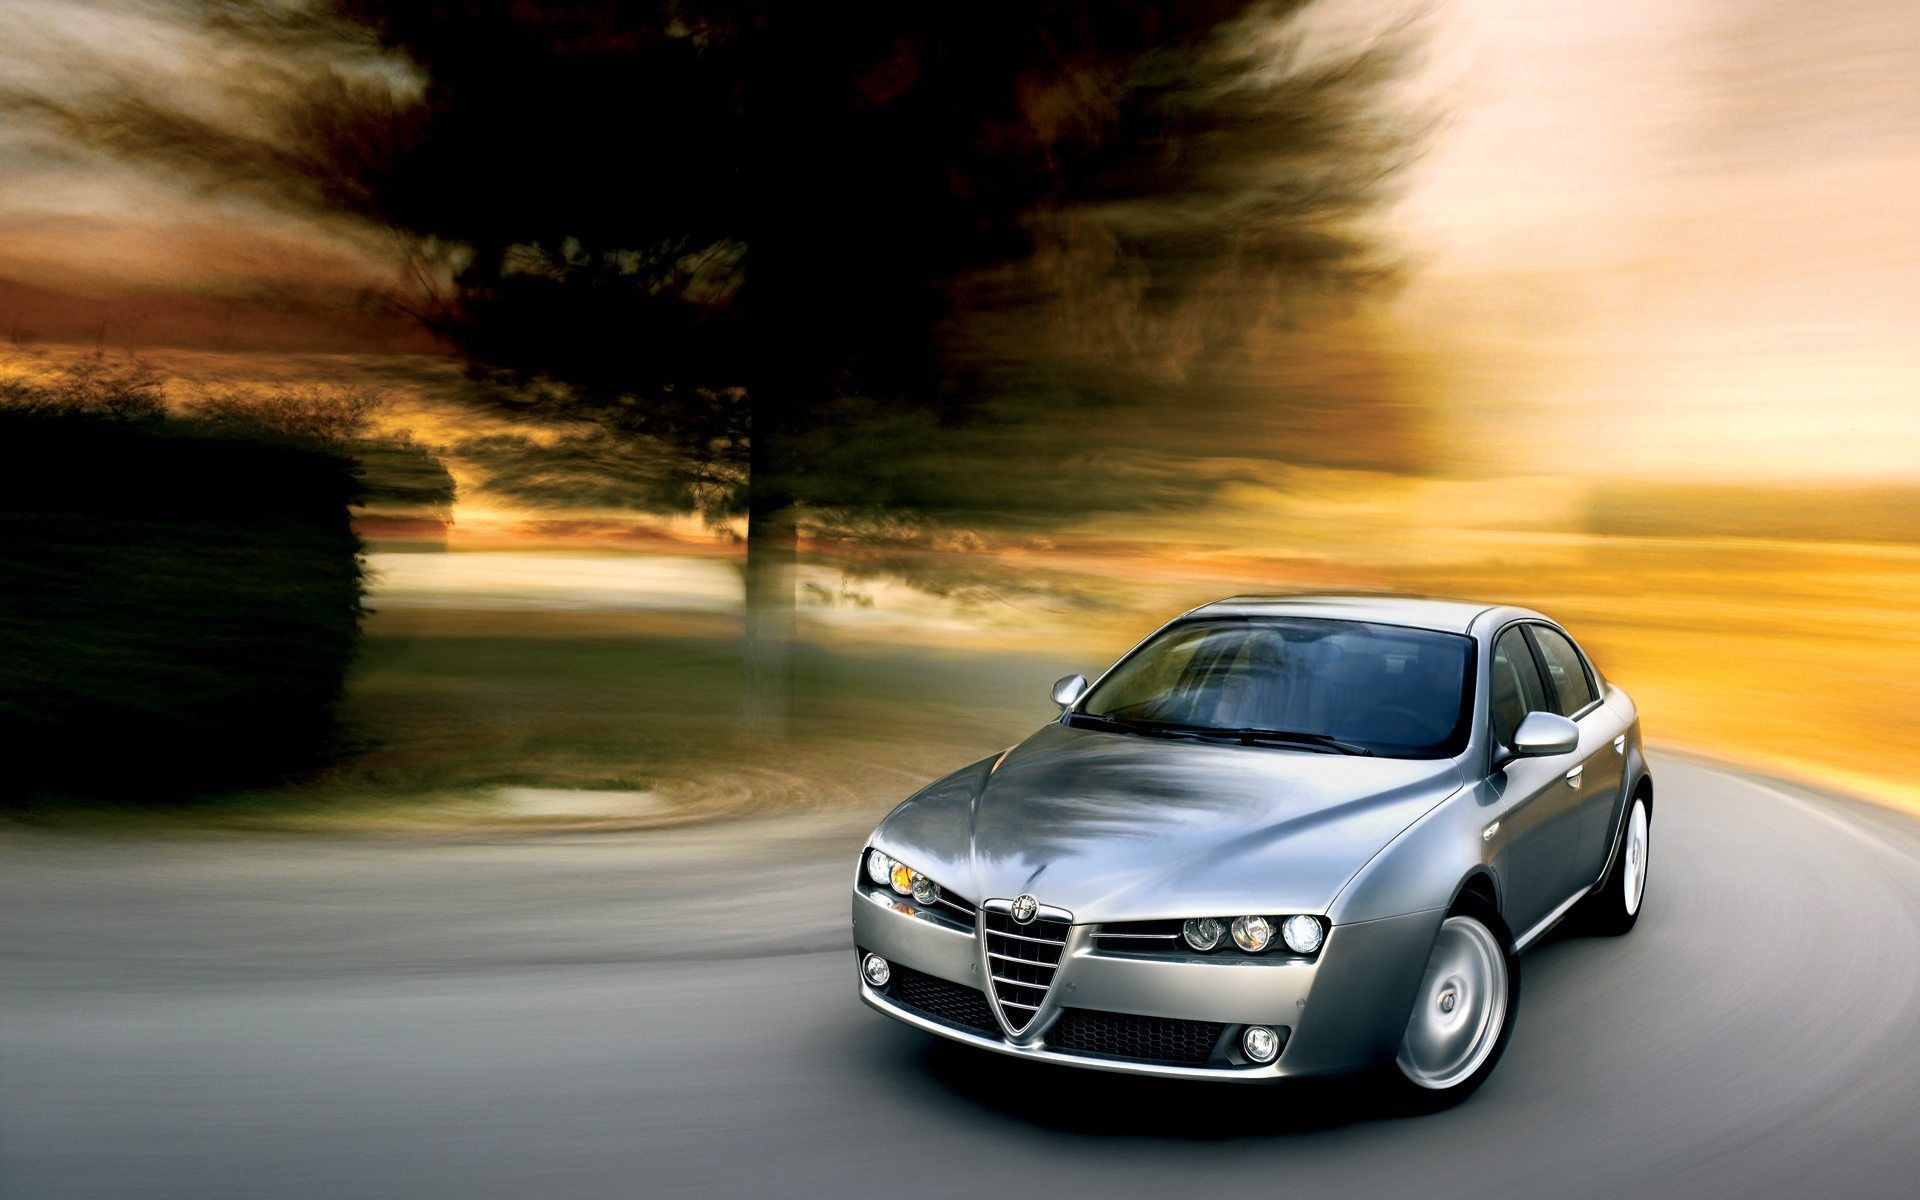 Alfa Romeo 159 Wallpaper